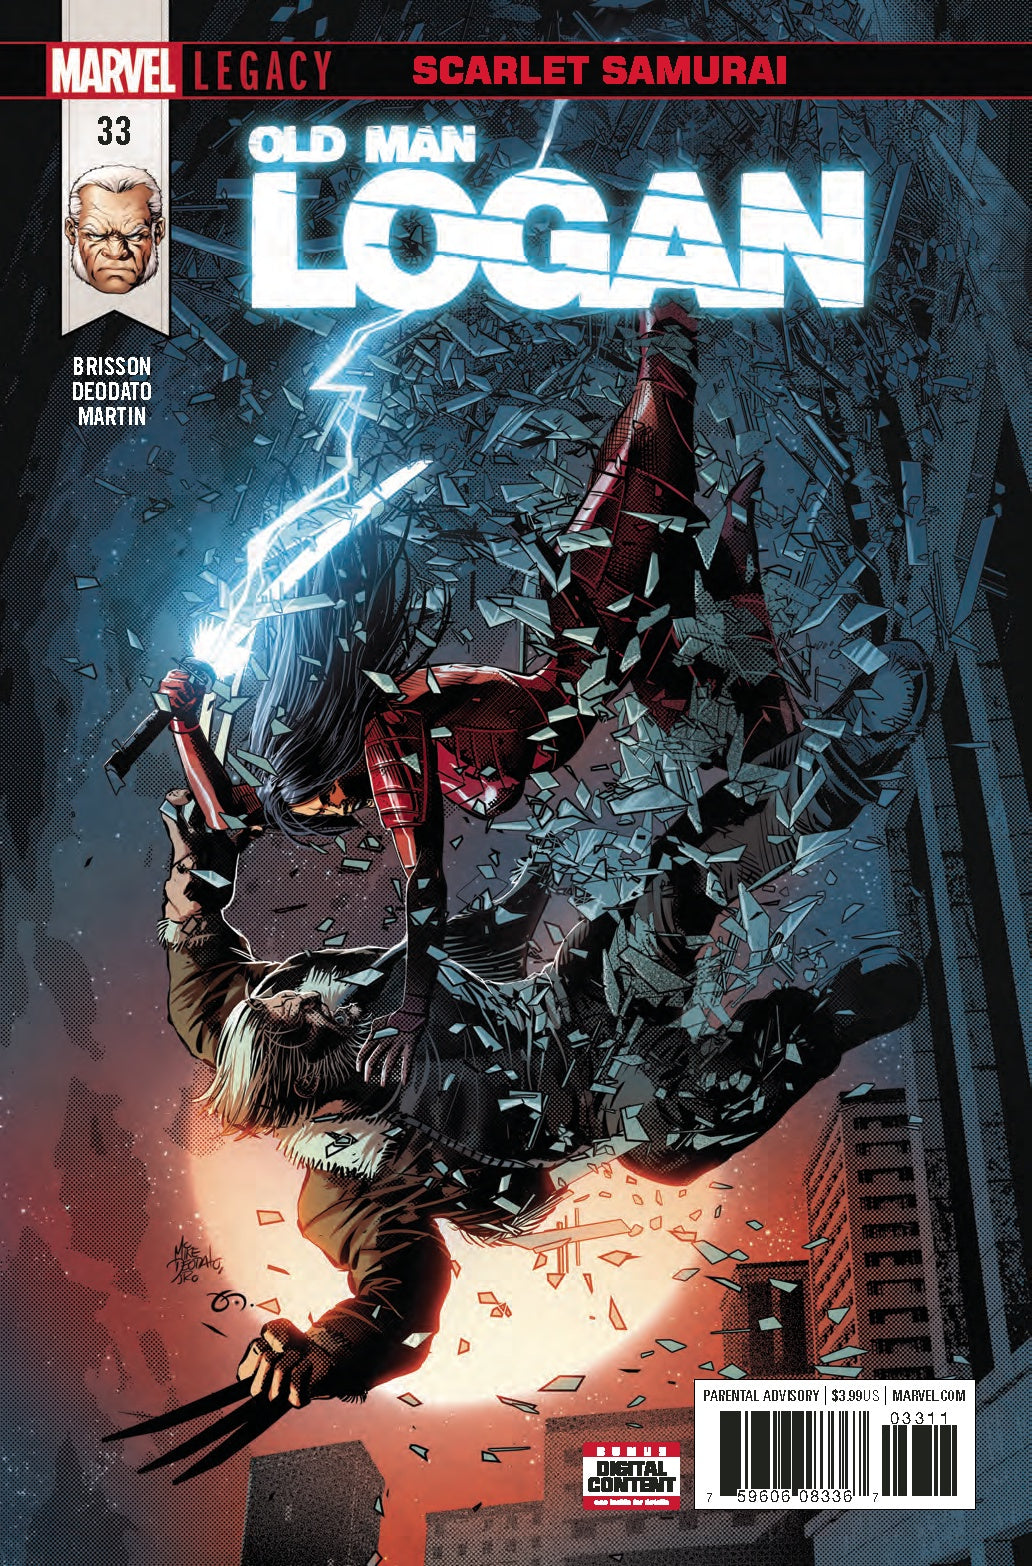 Old Man Logan #33 Leg